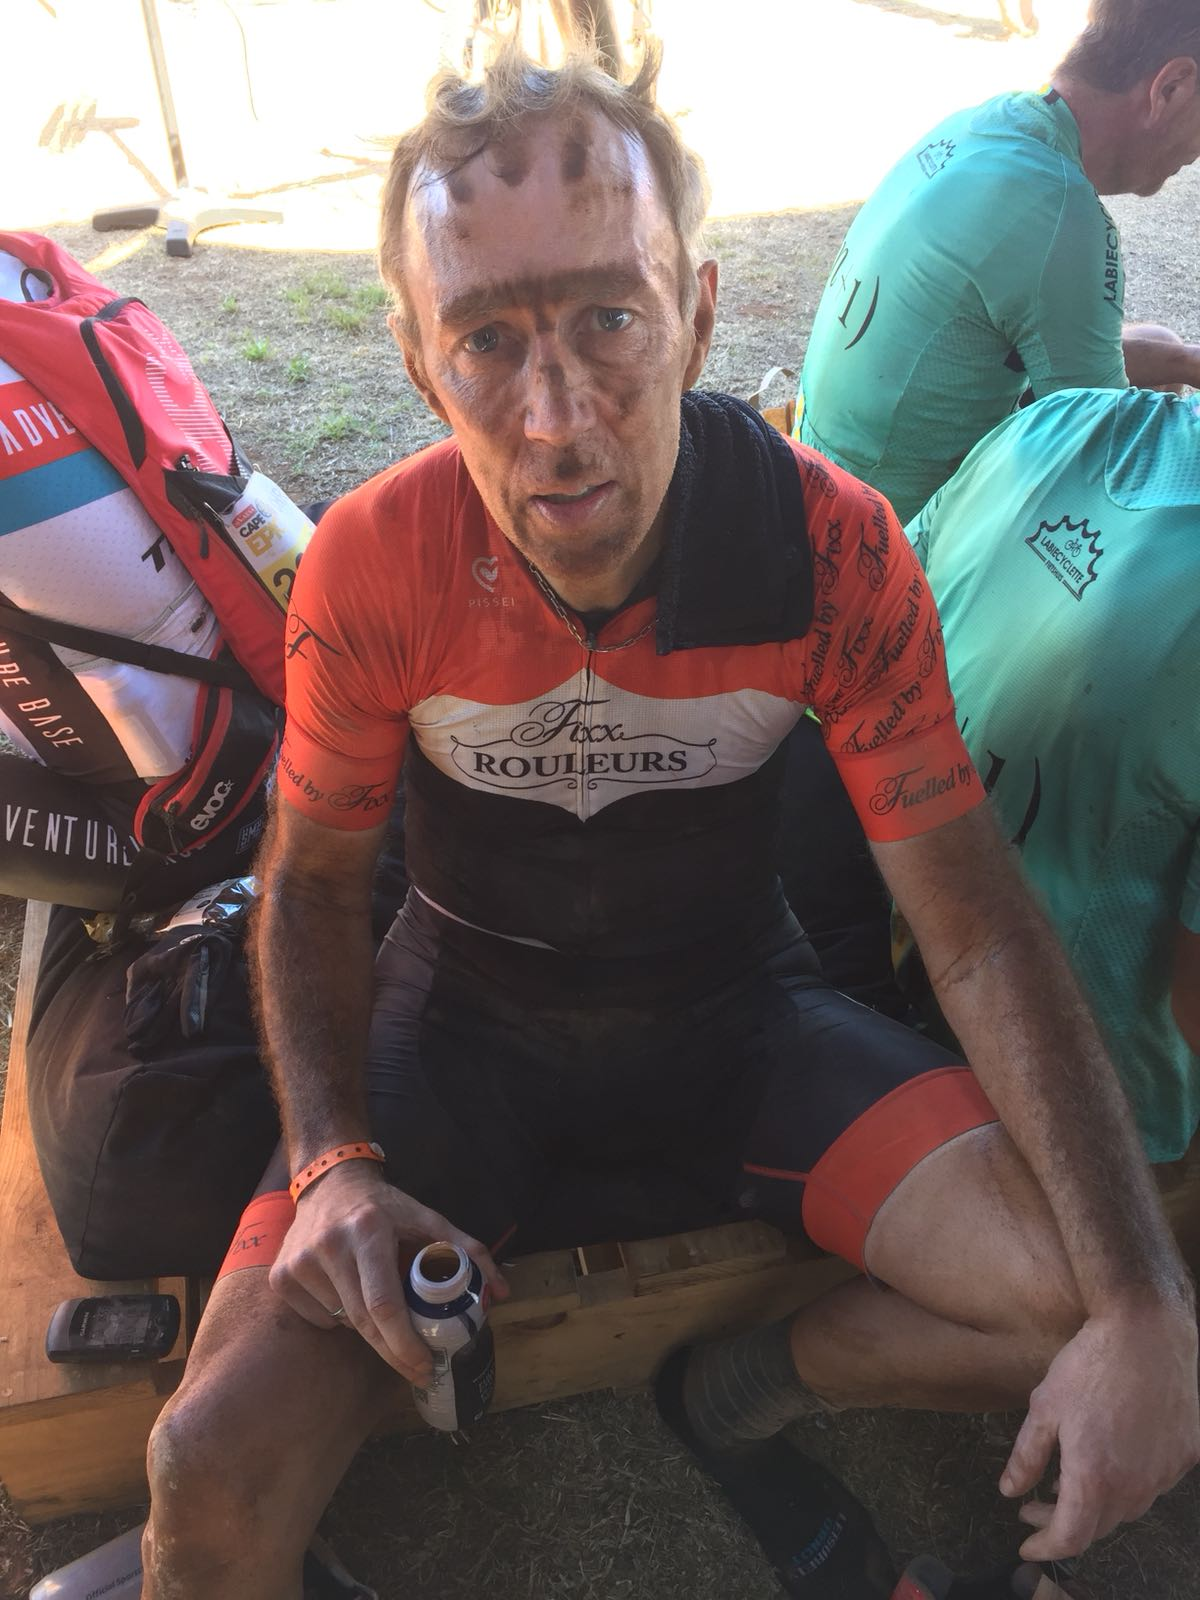 Robert Kehoe covered in muck after completing Cape Epic 2018